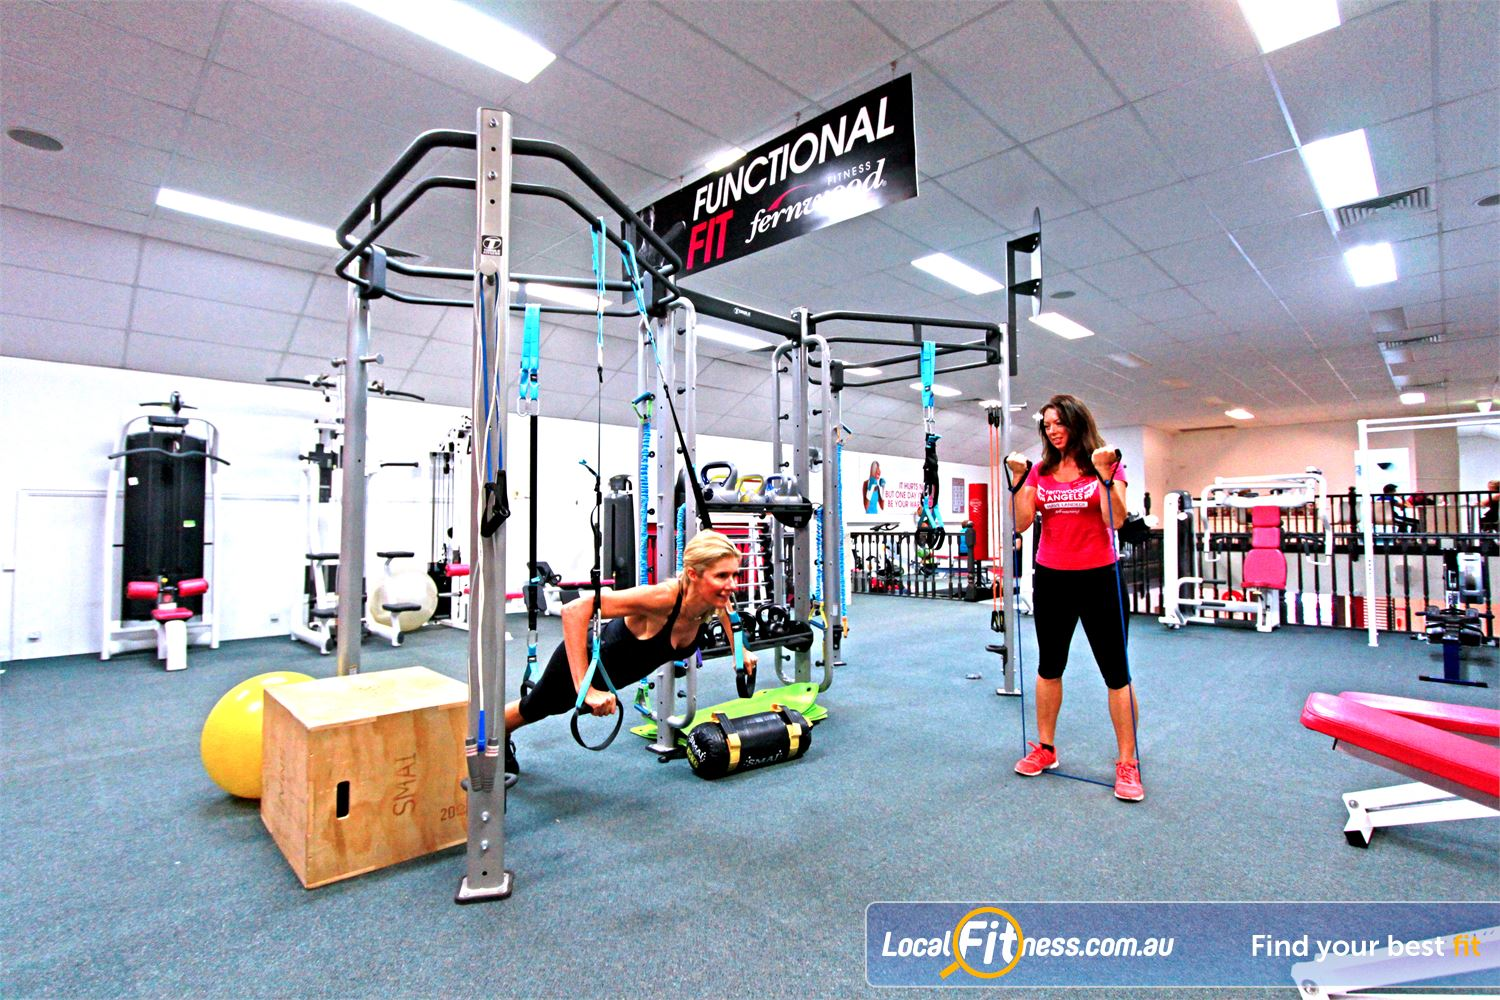 Fernwood Fitness Southland Near Mentone Our functional training rig, TRX, sandbags, plyo-boxes and more.